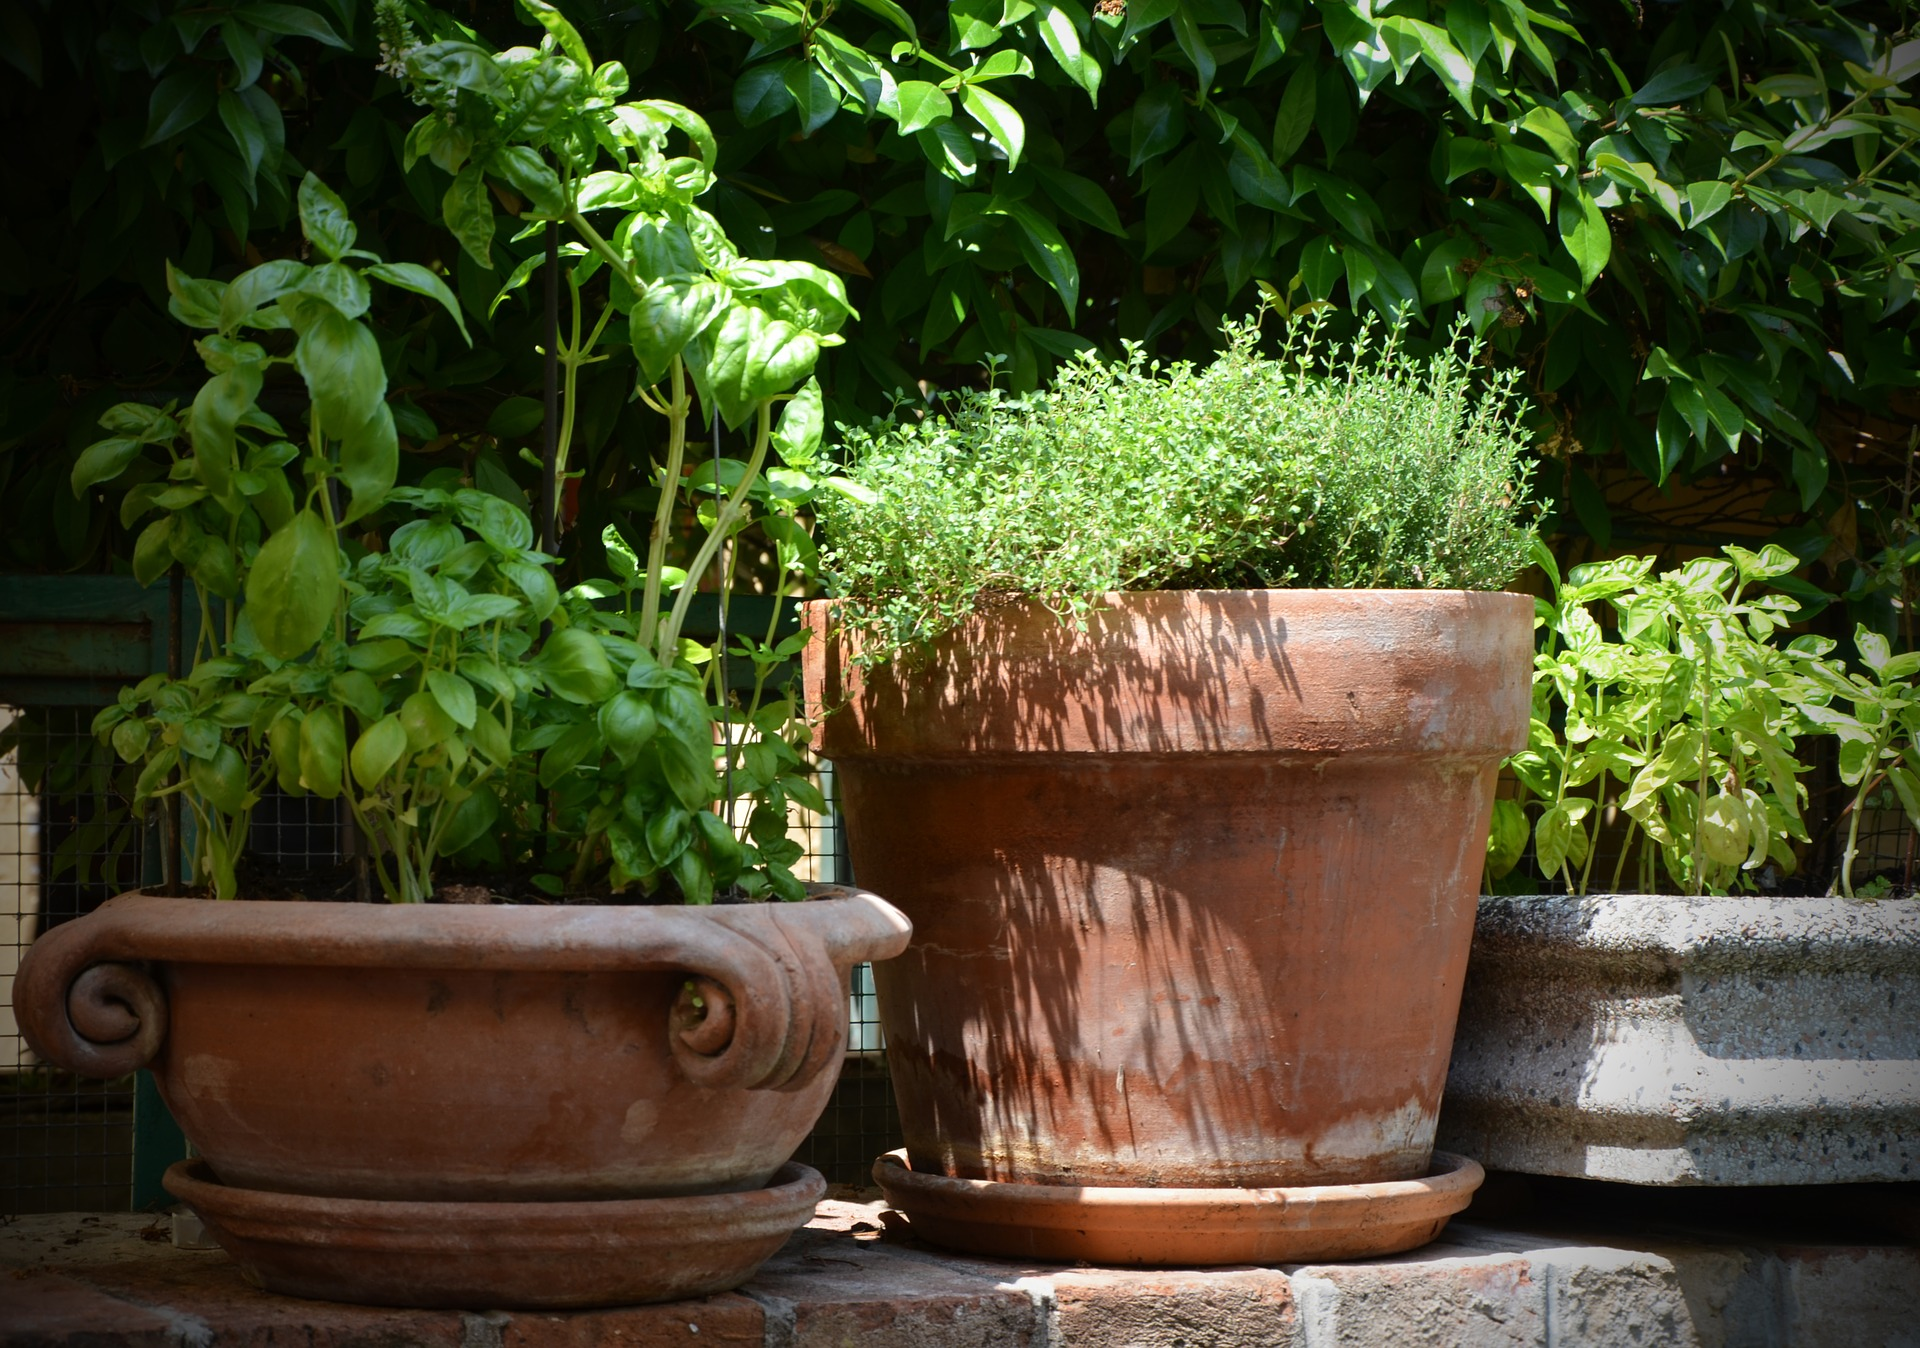 5 Essential Tips for Cultivating an Apartment Herb Garden